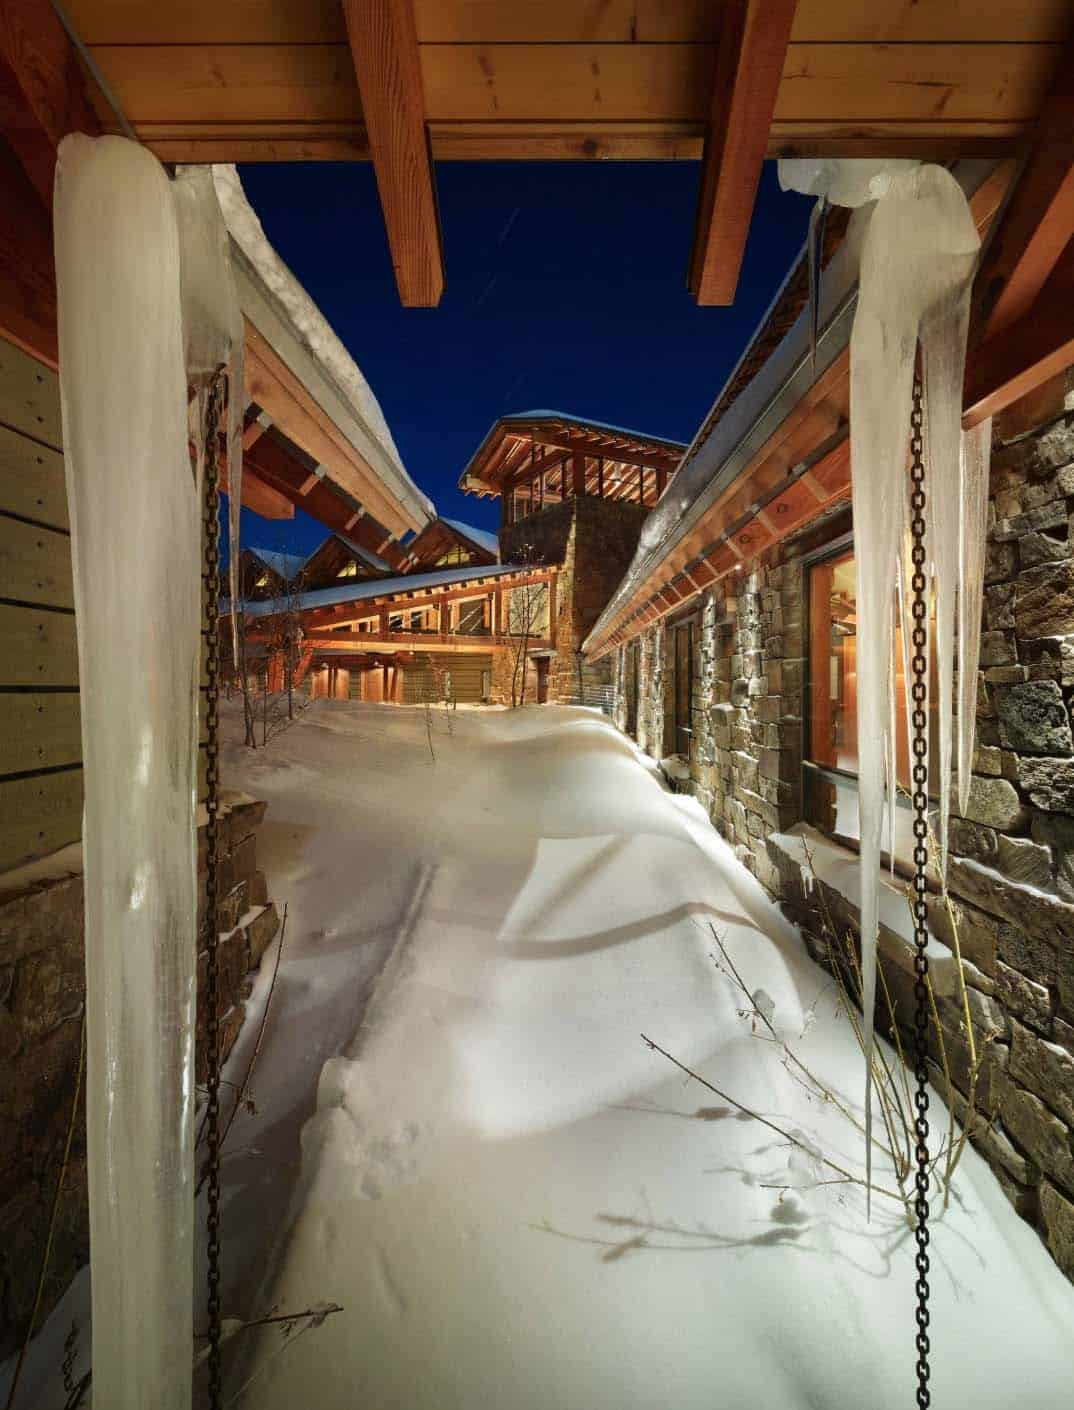 winter-view-back-to-entry-stair-tower-rustic-exterior